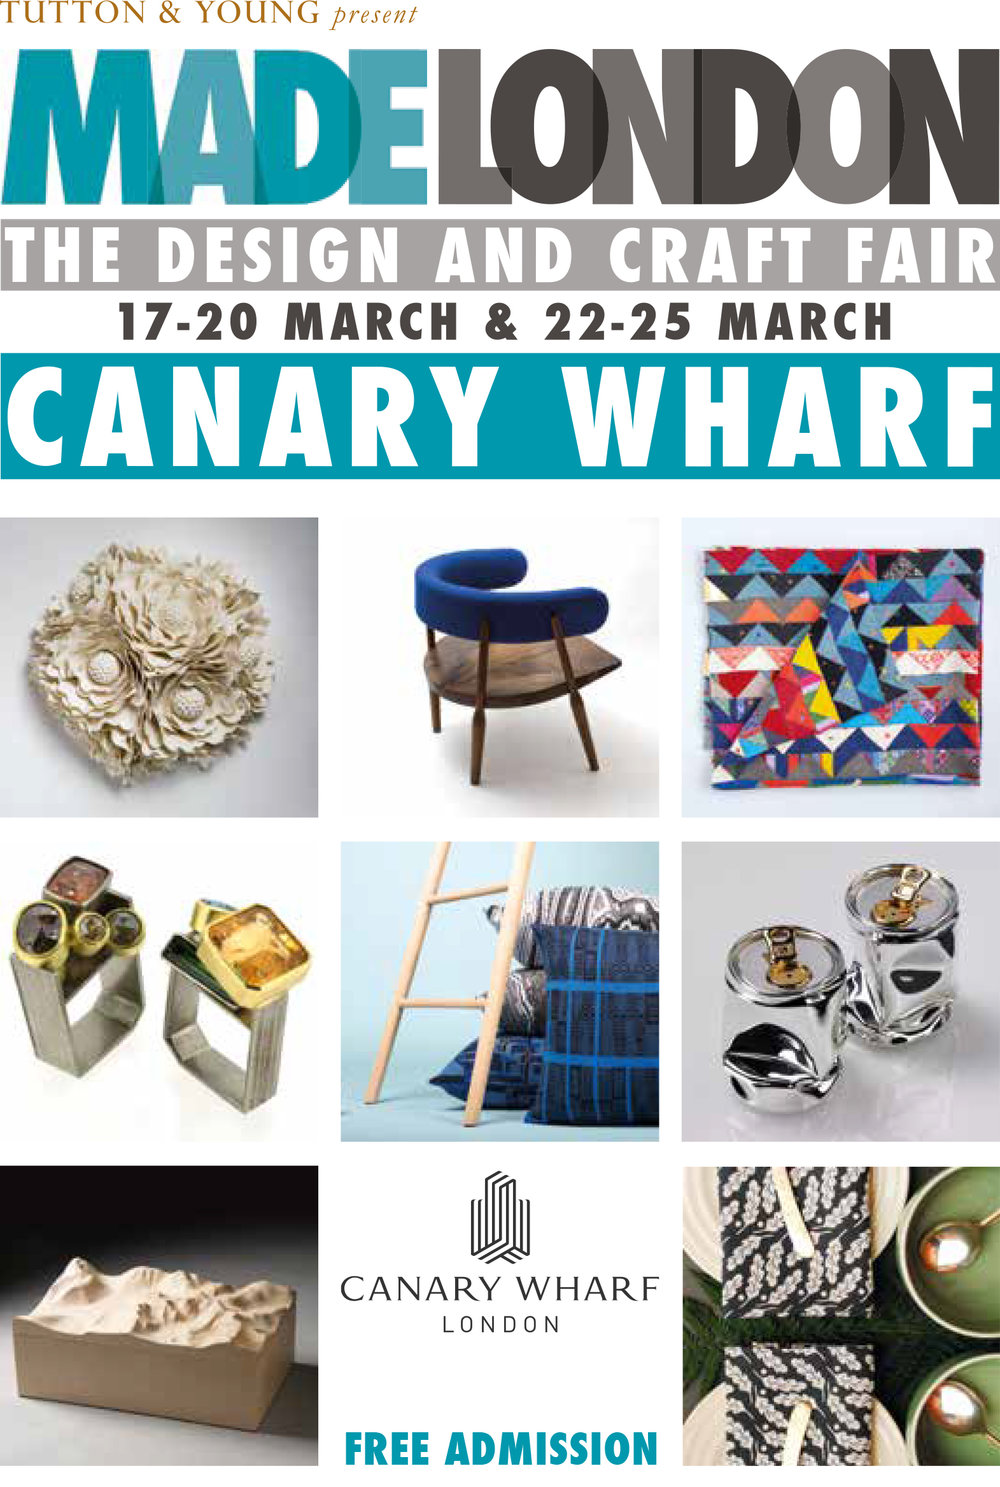 madelondon-canarywharf1